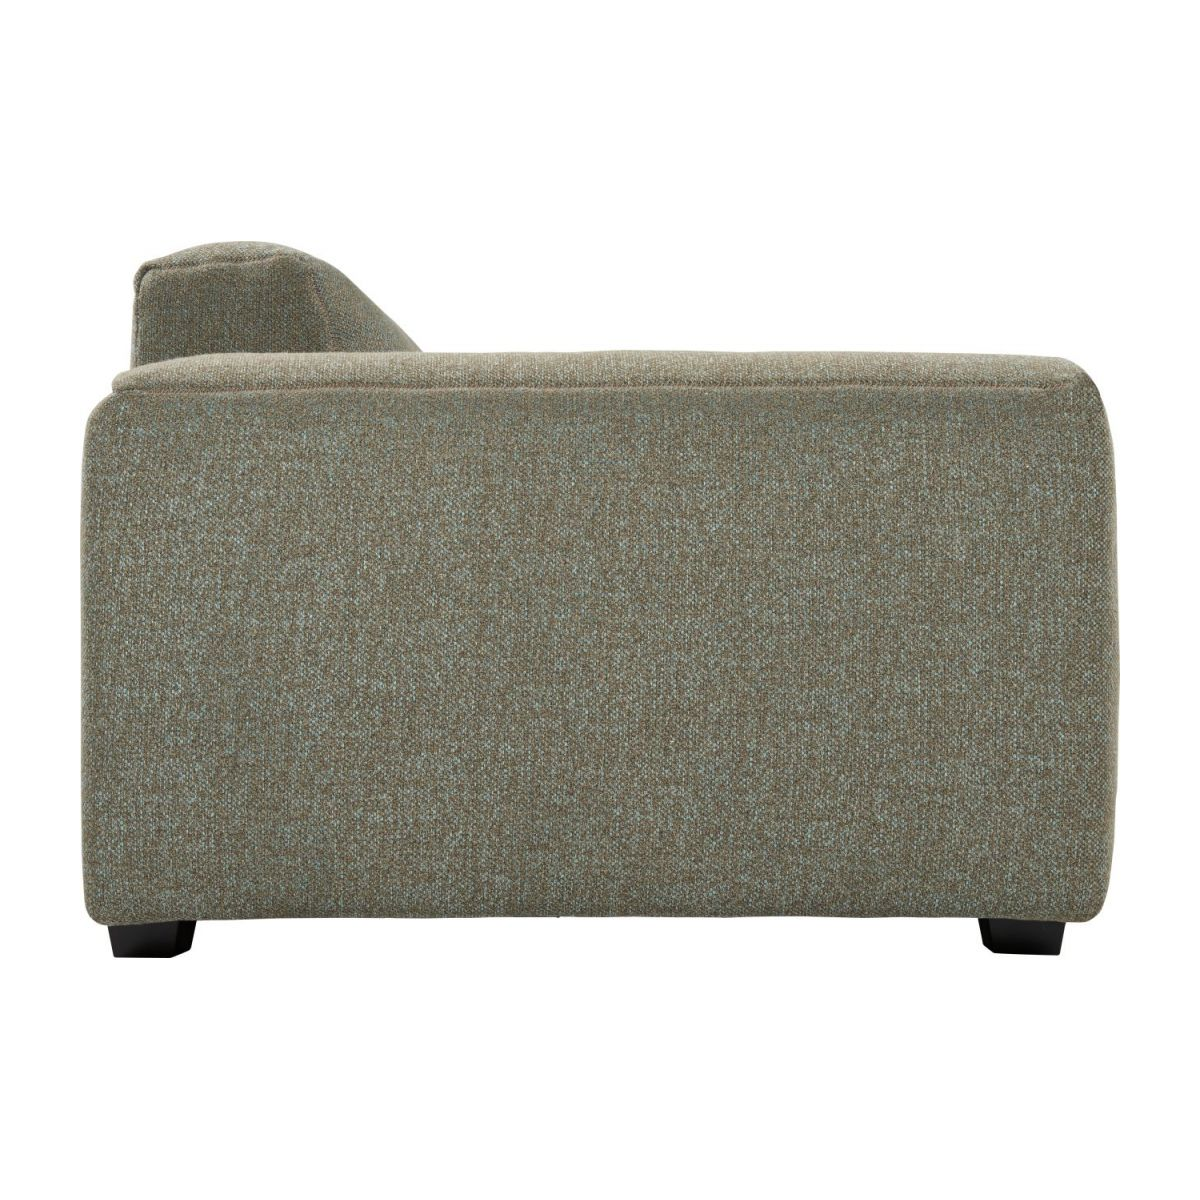 2 seater sofa in Lecce fabric, slade grey n°4